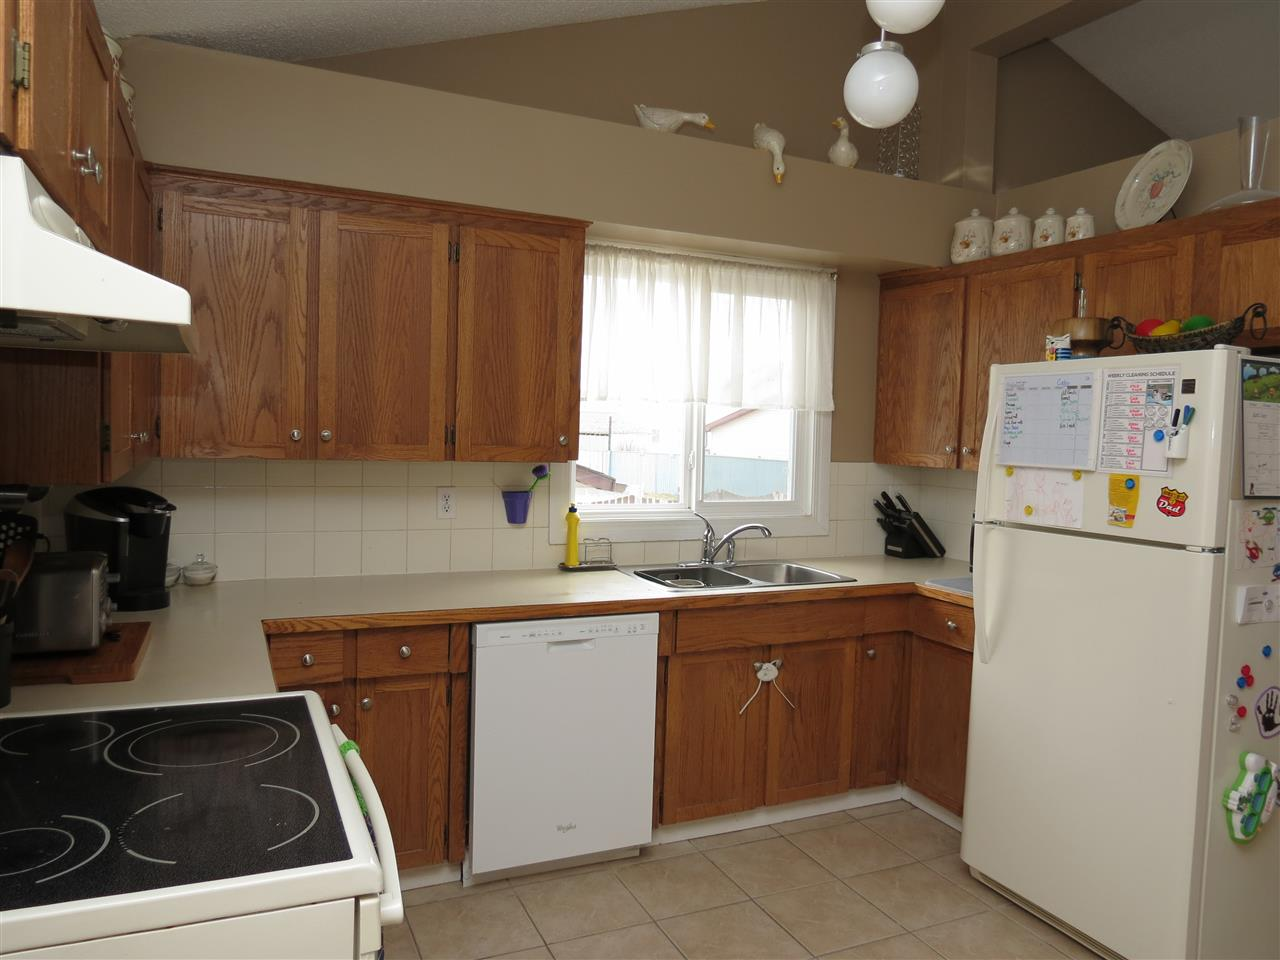 Photo 4: 9907 90 Street: Morinville House for sale : MLS(r) # E4057678